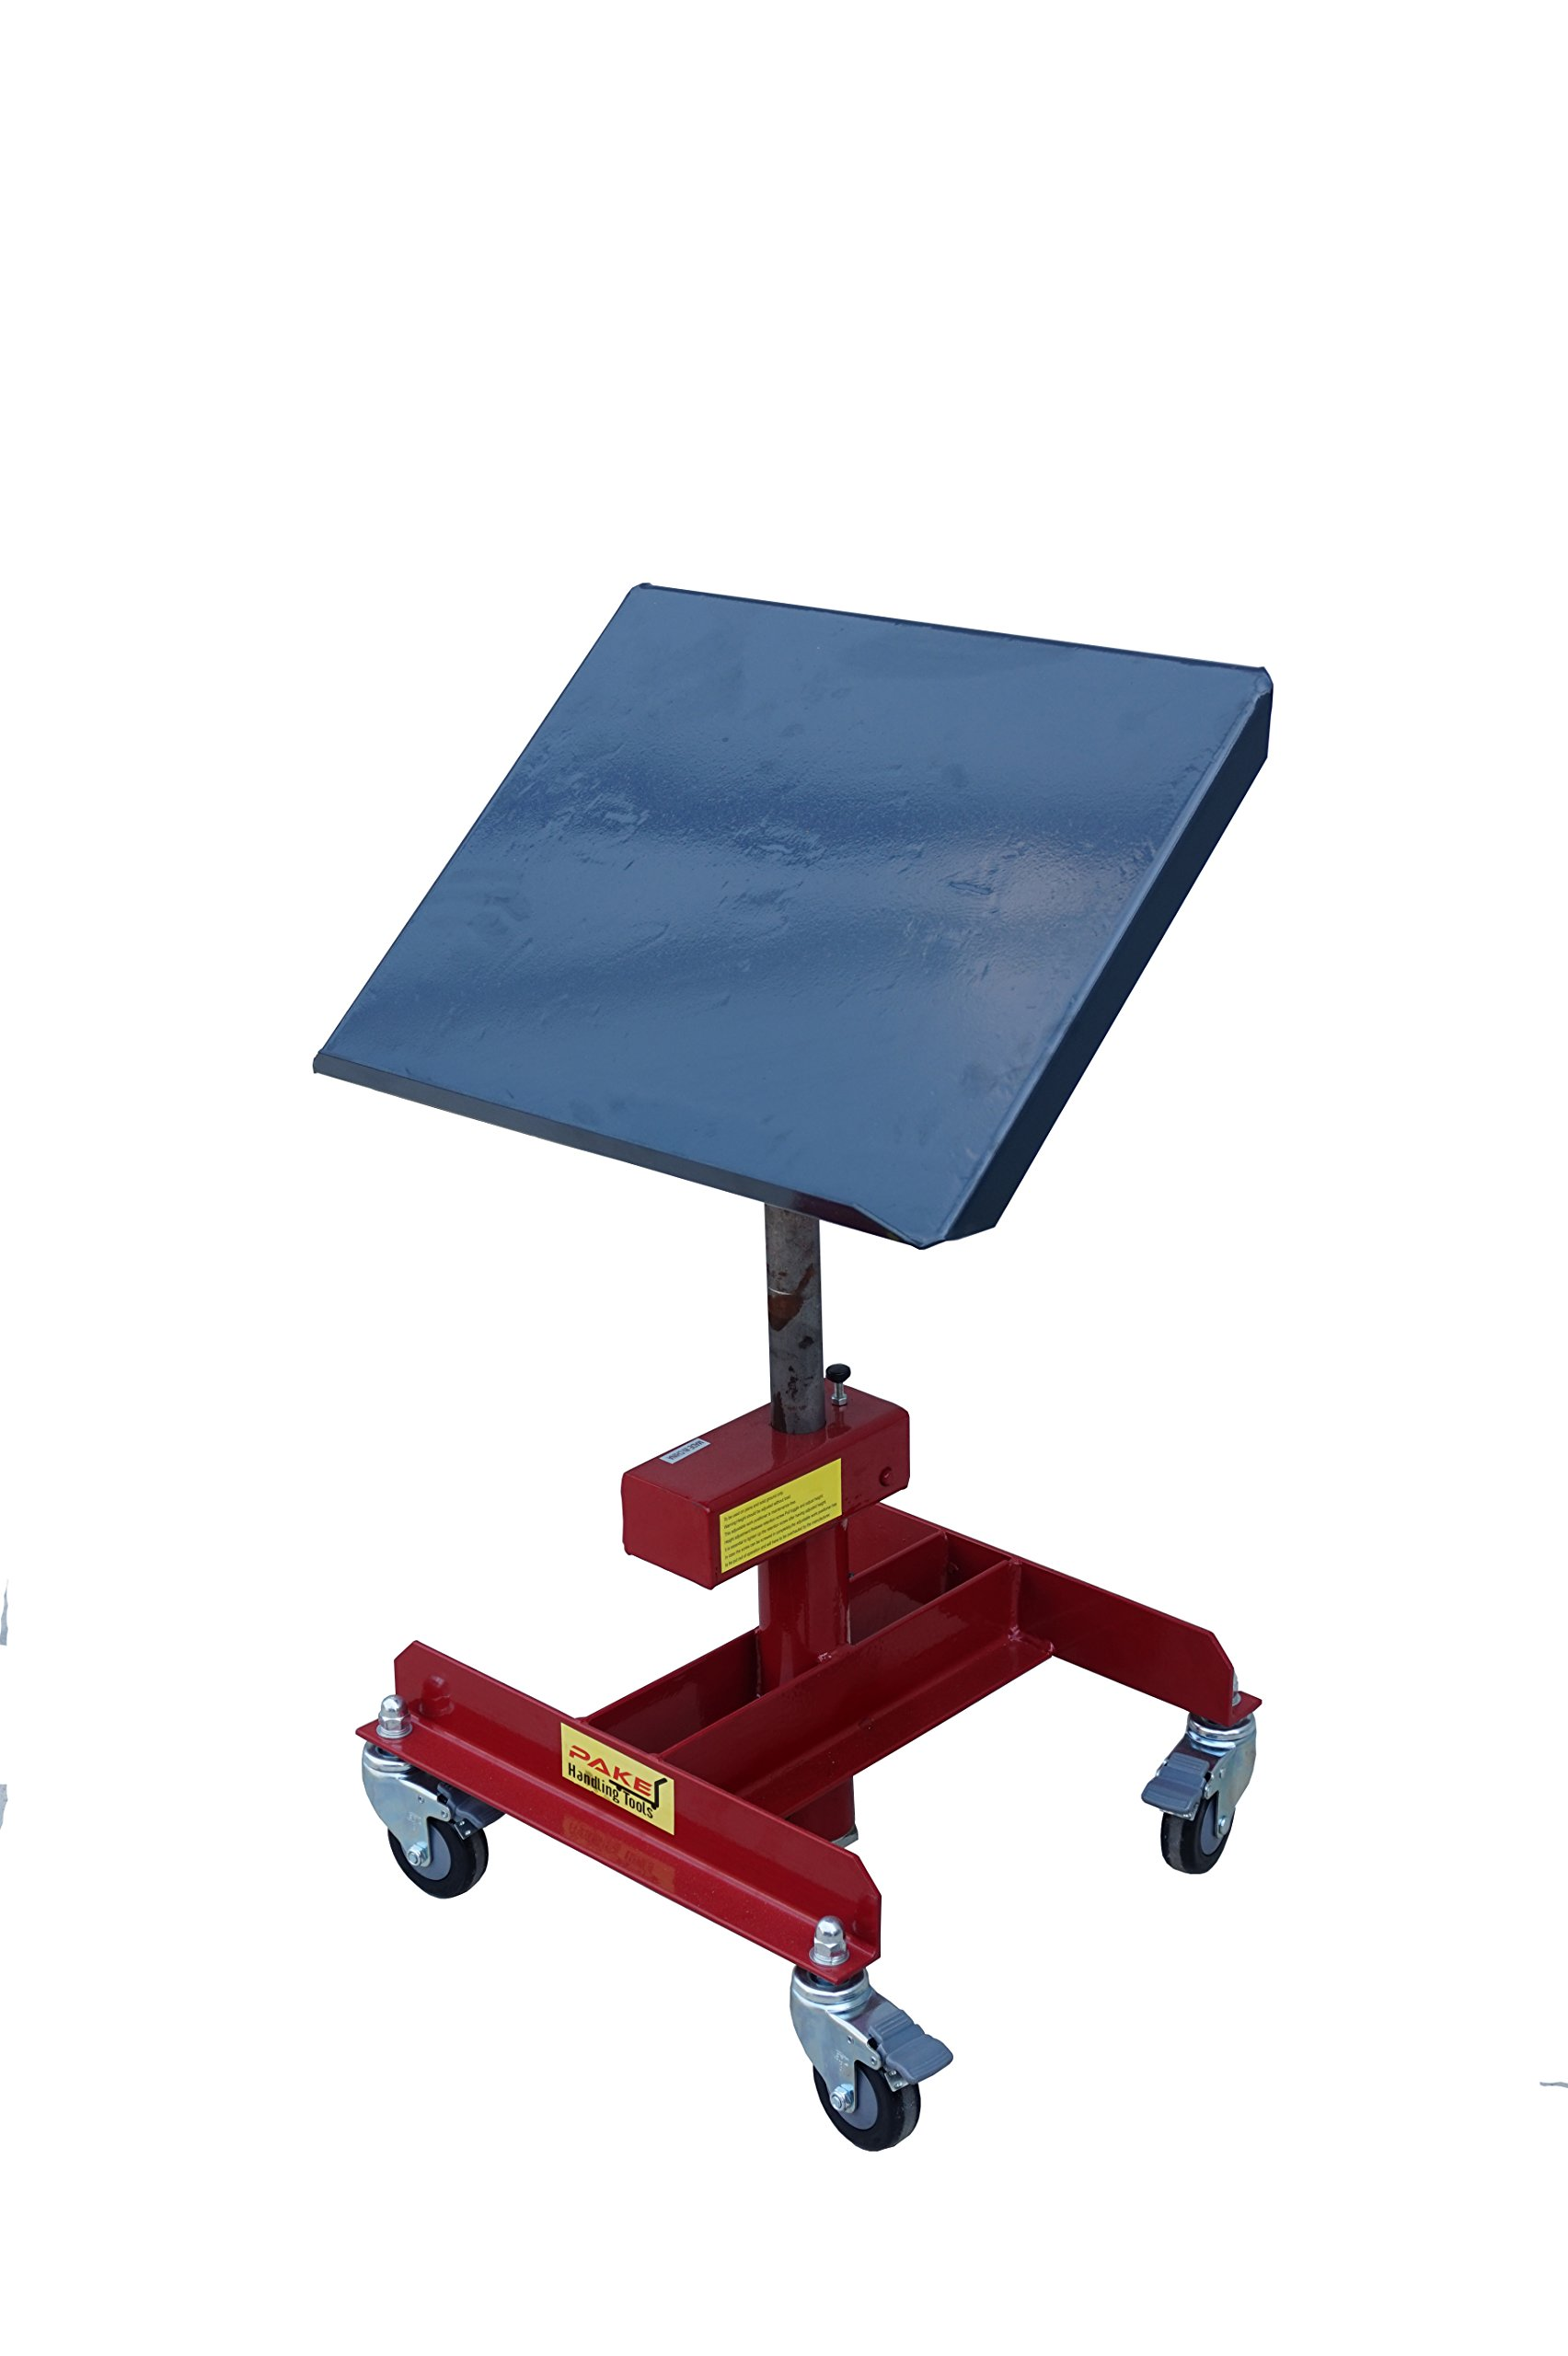 Pake Handling Tools - Tilting Work Table, 20 X 16'', 20 to 28'' Height, 330 lb. Load Capacity, 40 Degrees Tilting Angle